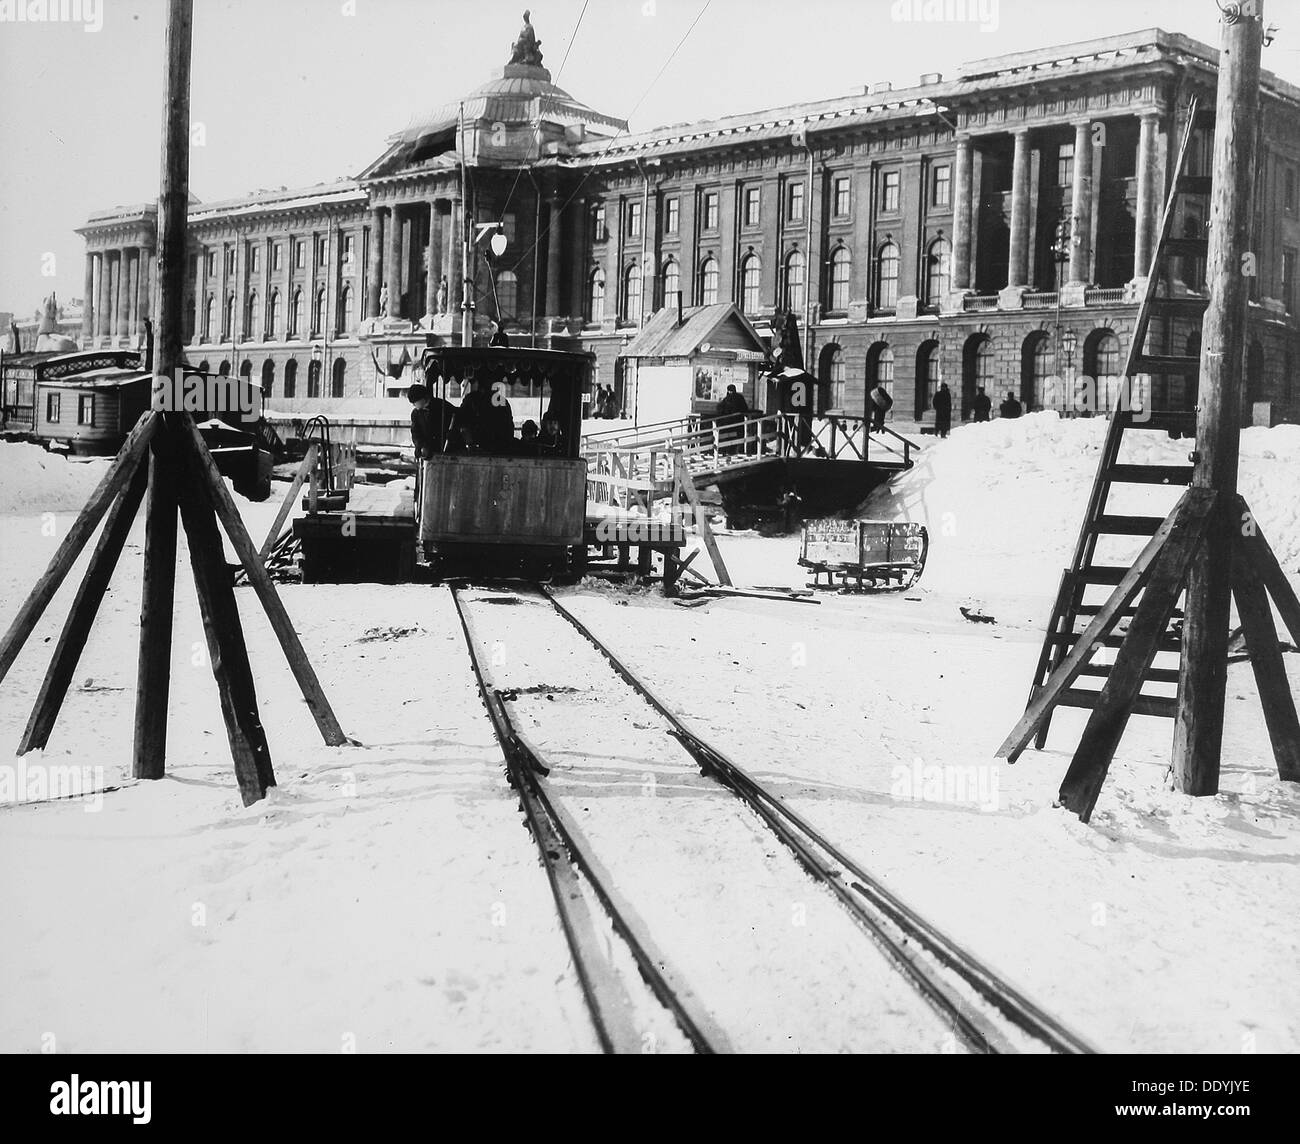 Suburban train station in fornt of the Academy of Arts, St Petersburg, Russia, c1896-c1898. - Stock Image